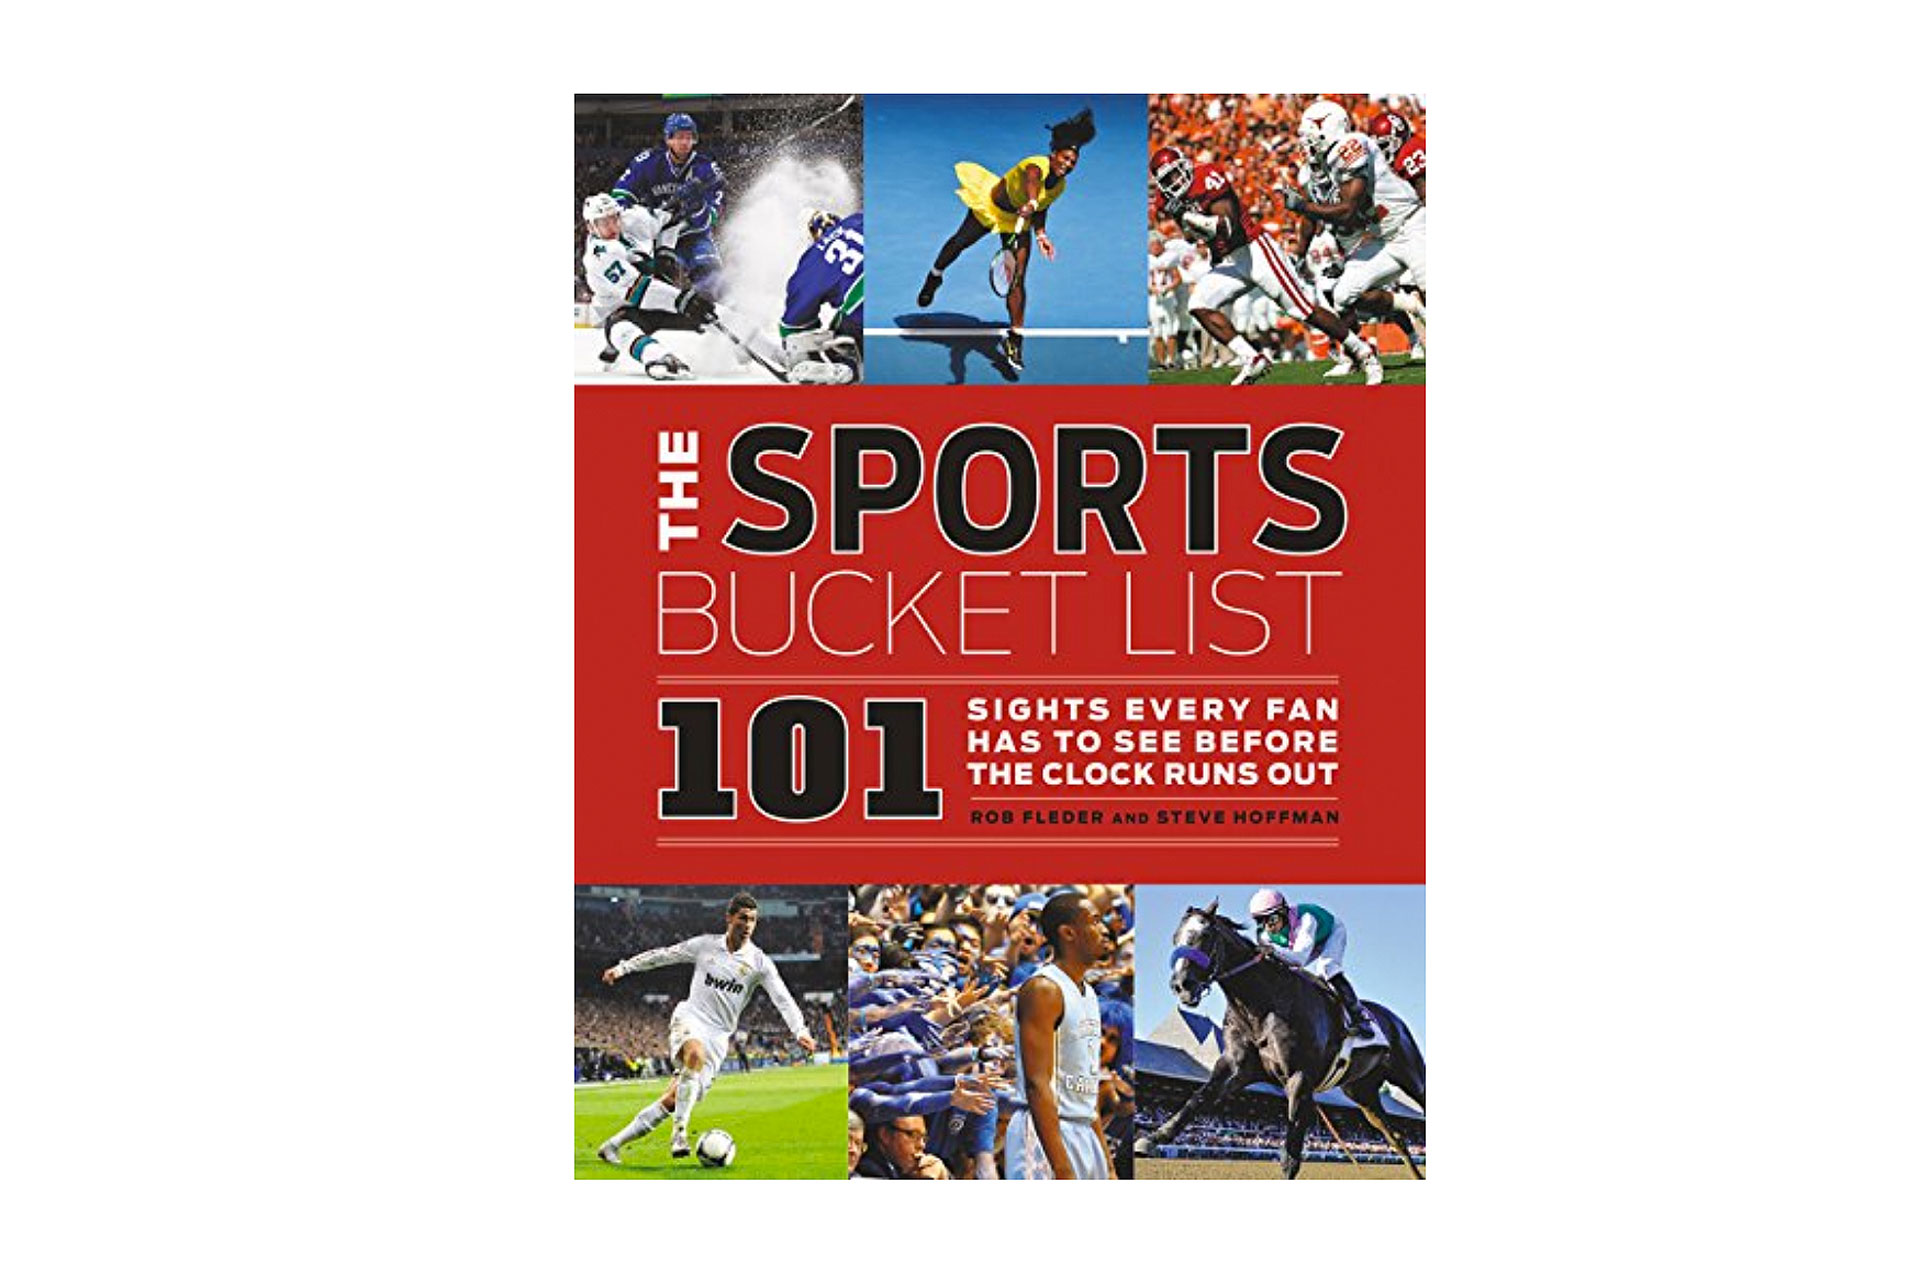 Sports Bucket List Book; Courtesy of Amazon